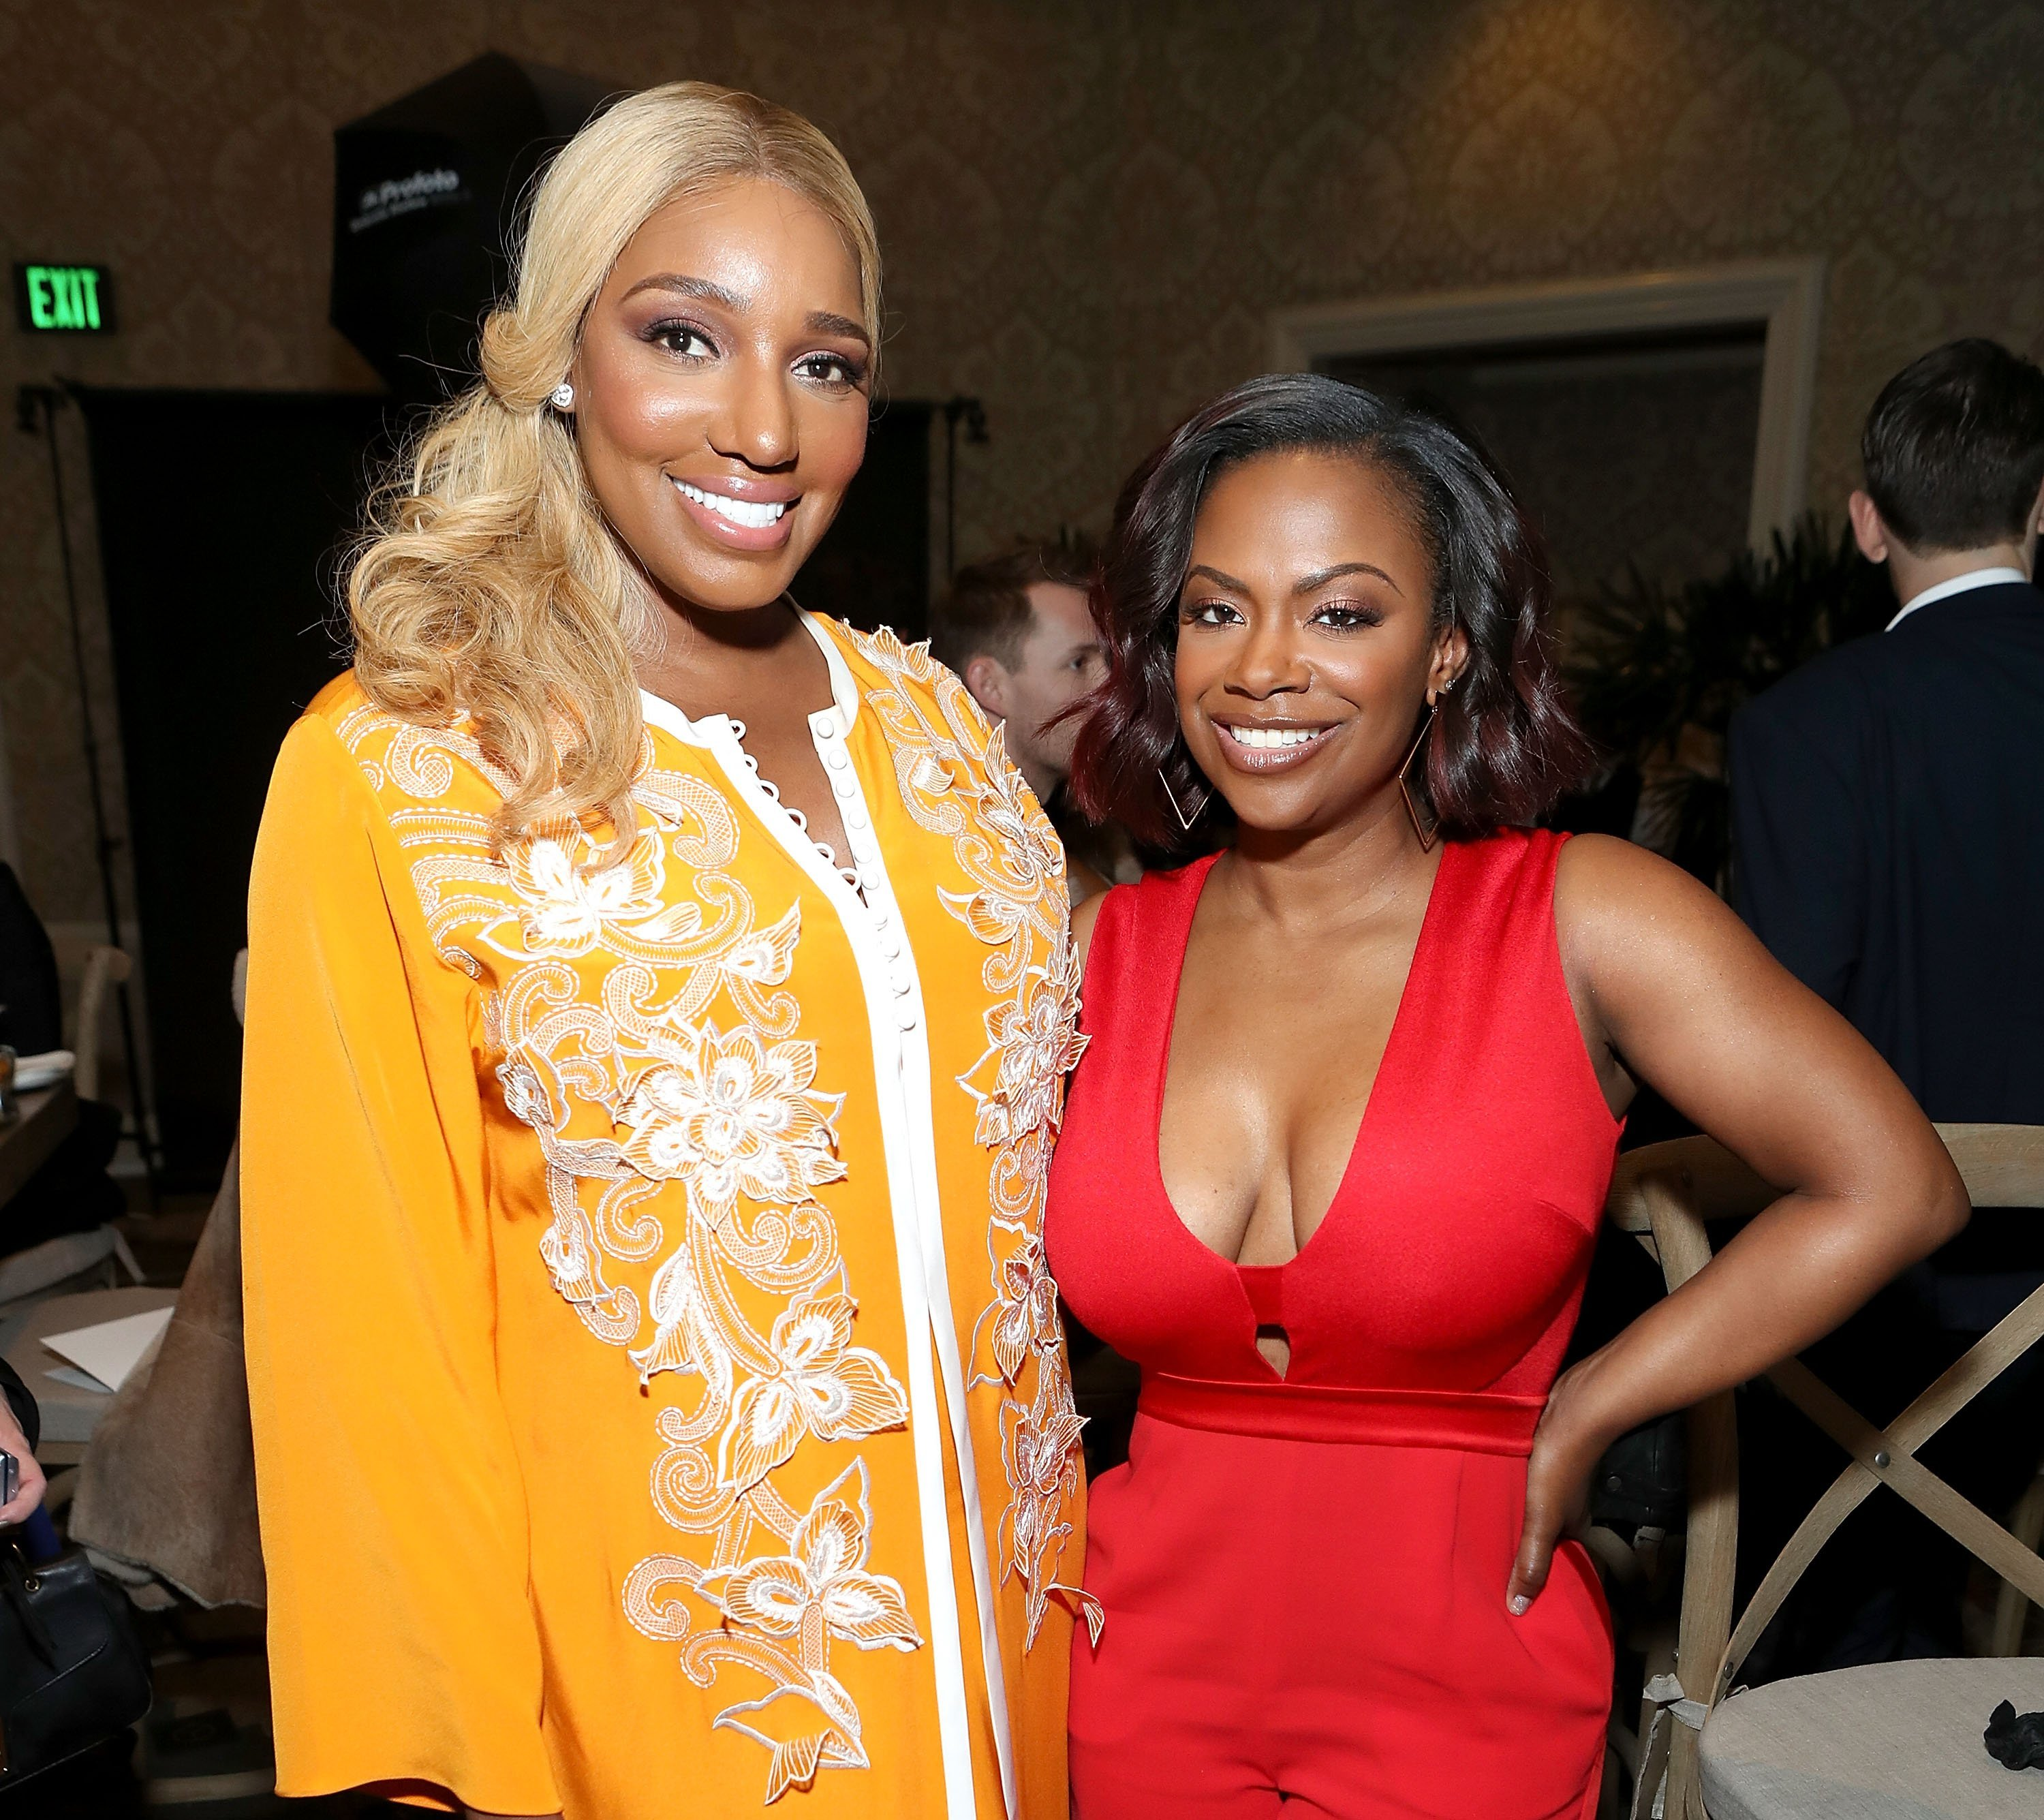 NeNe Leakes and Kandi Burruss at the Mercedes-Benz 2017 Academy Awards Viewing Party | Photo: Getty Images